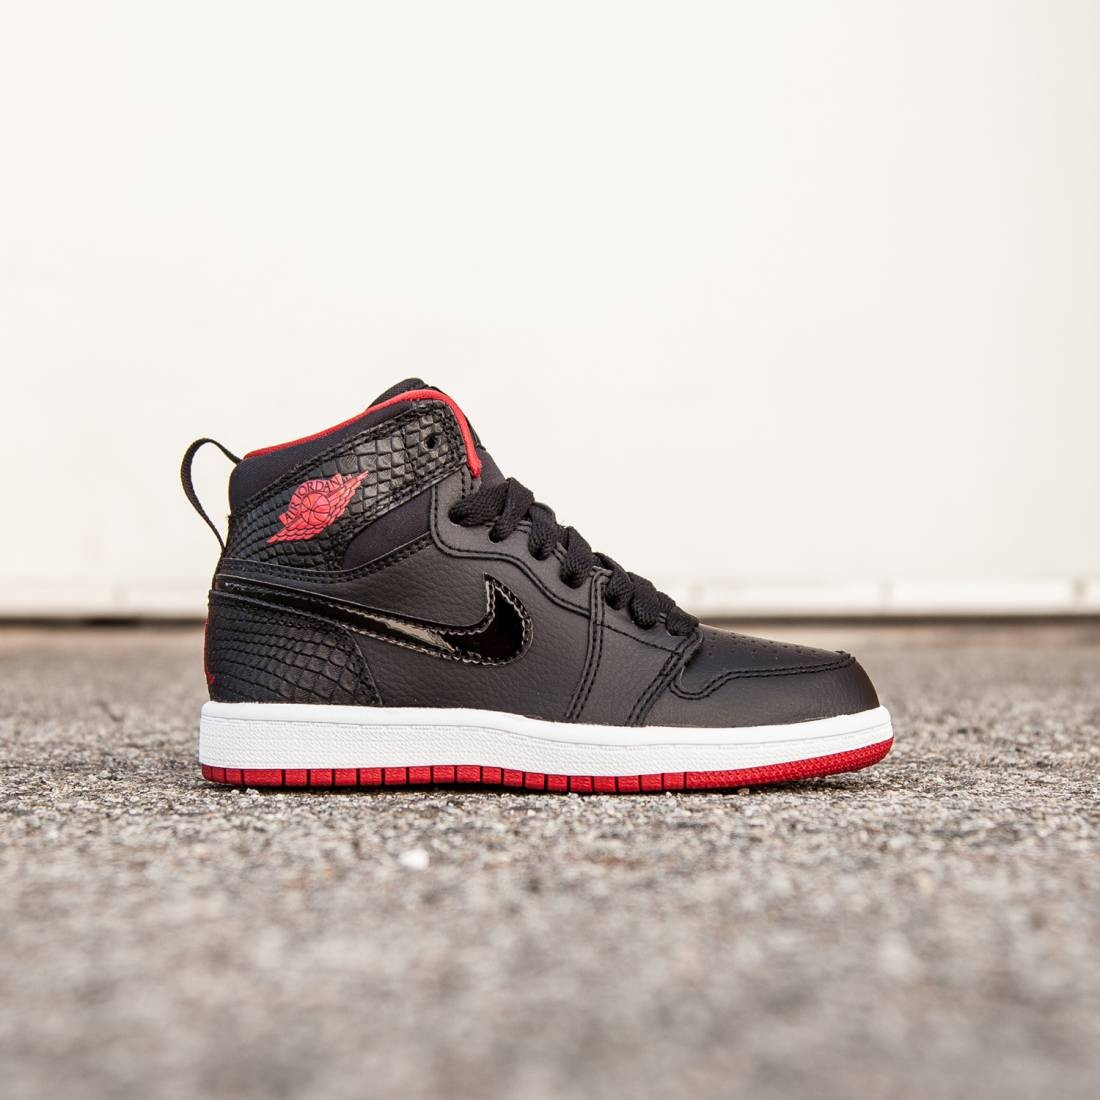 timeless design 22c14 88fe5 Air Jordan 1 Retro High Little Kids (black / white / gym red)